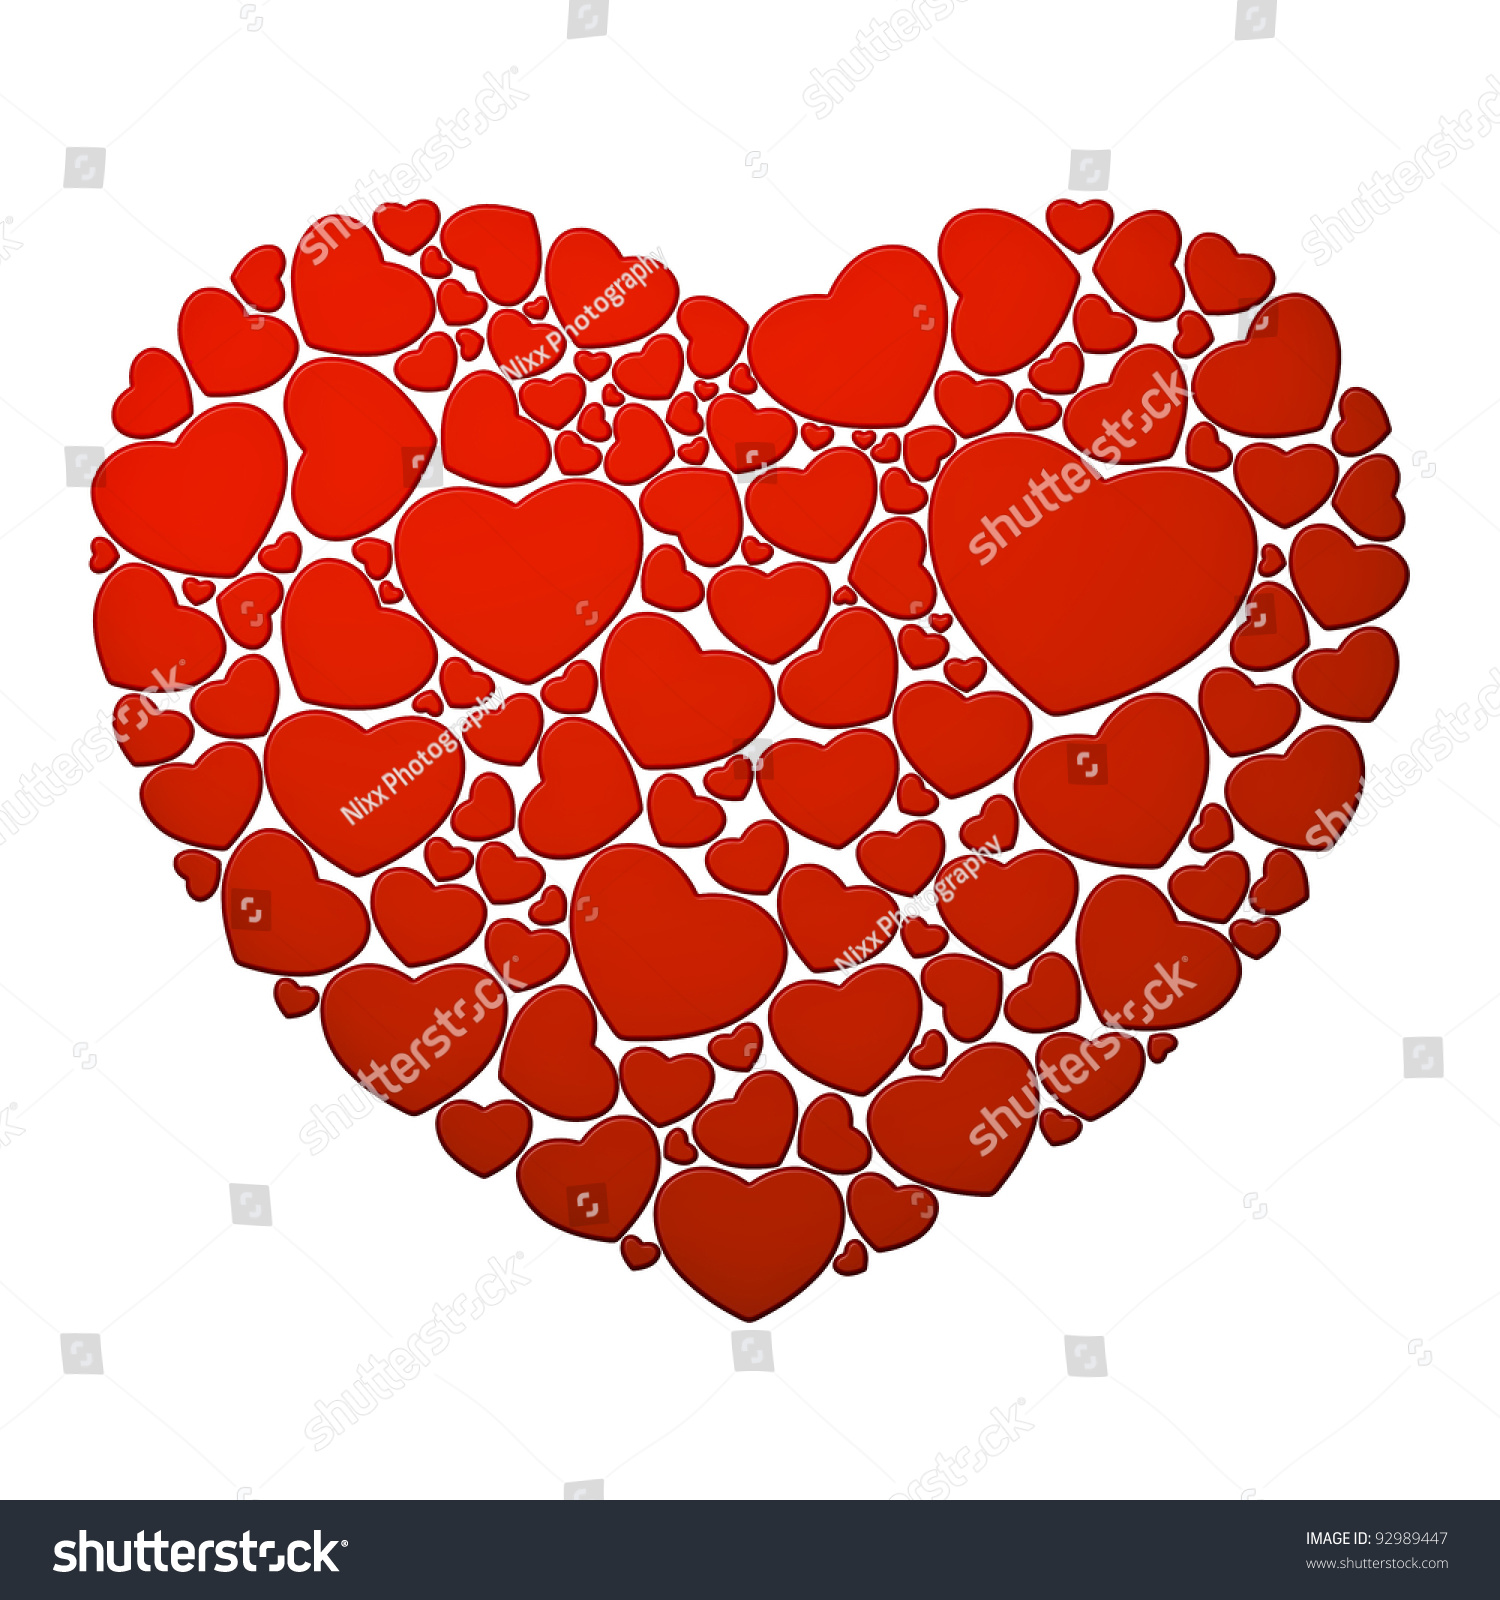 Big Heart Composed Small Red Hearts Stock Illustration